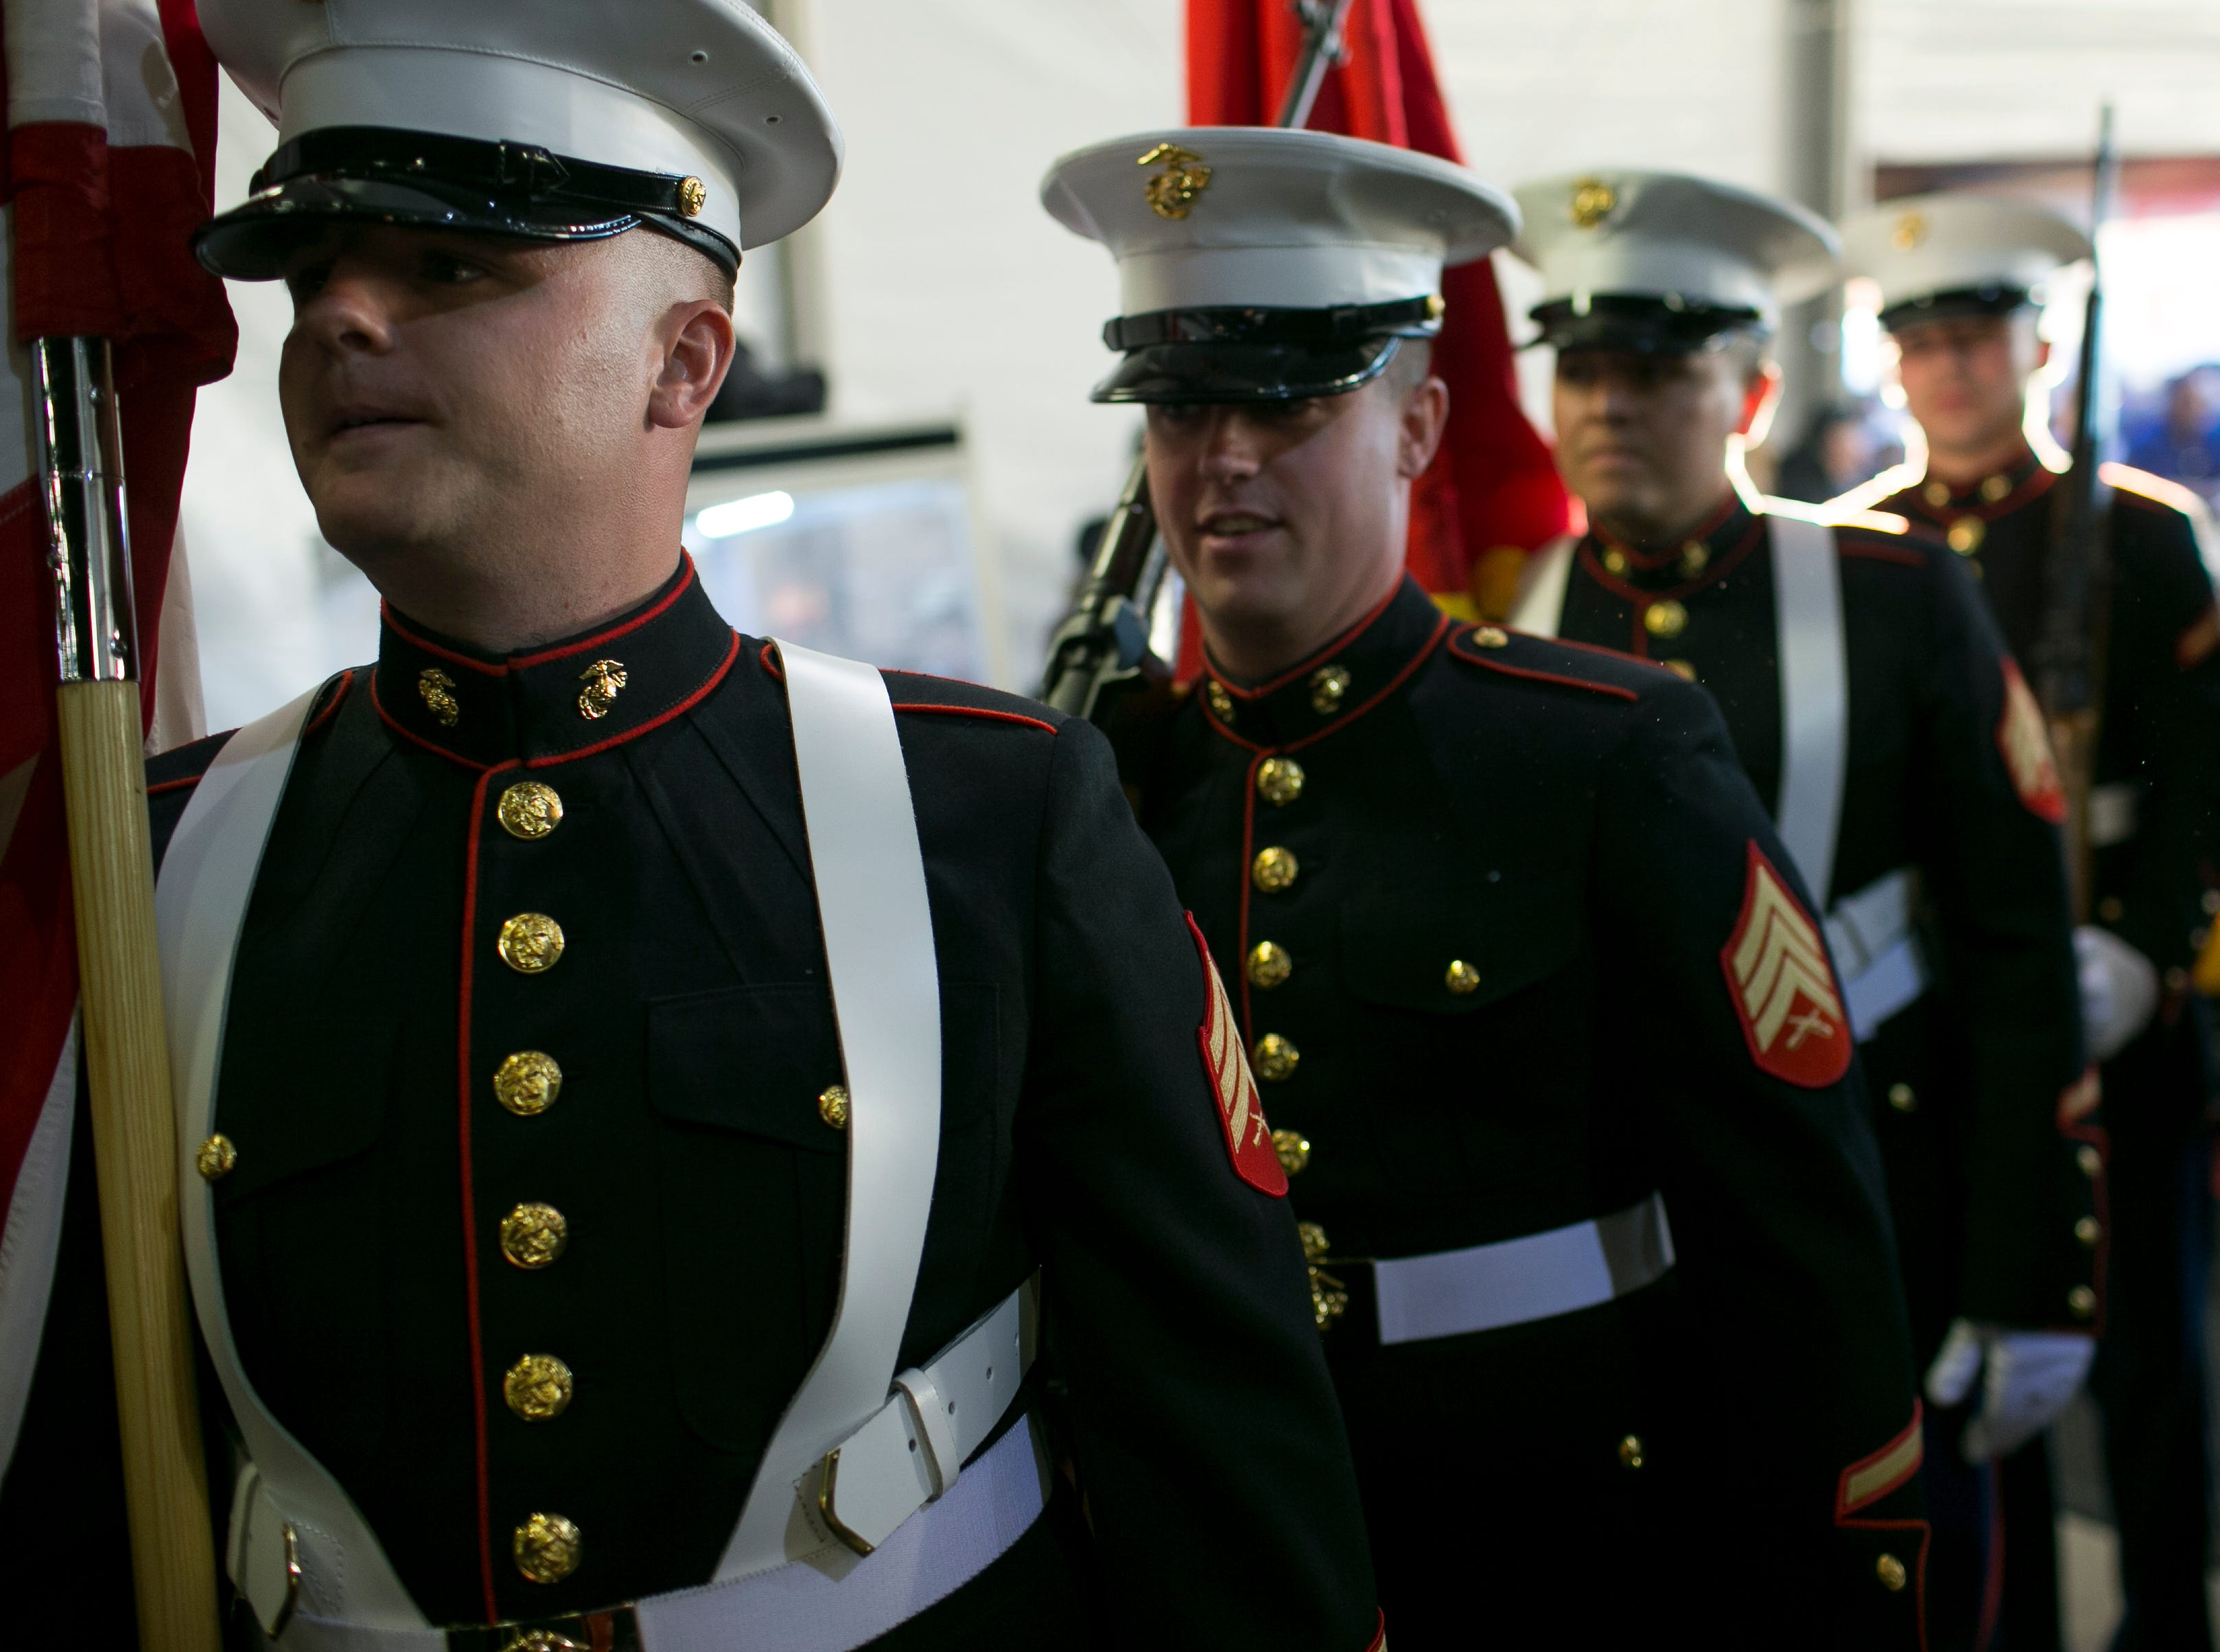 Sgt. Hill (front, left) Sgt. Fritz (right), Sgt. Martinez (second-right) and Private First Class McKinley (far right, last) of the Marine Corps Bulk Fuel Company ÒCÓ, 6th ESB, 4th MLG Color Guard prepares to lead Four original Bumblebee Camaros from the Transformers film franchise to be auctioned off for the non-profit Operation Homefront at Barrett-Jackson collector-car auction at WestWorld on Sat. January 19, 2019 in Scottsdale, Ariz.